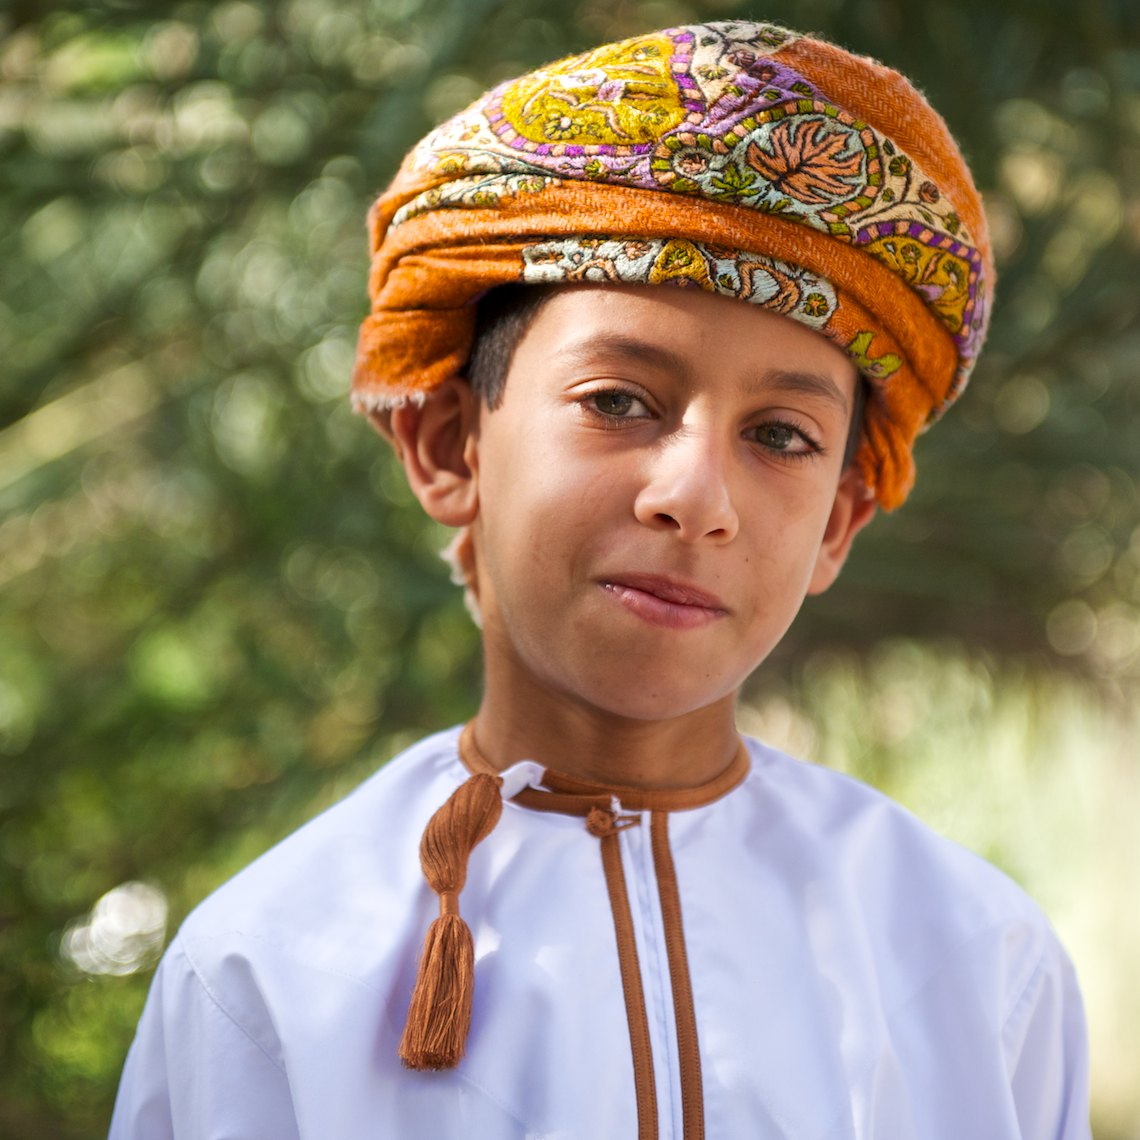 Oman portrait boy